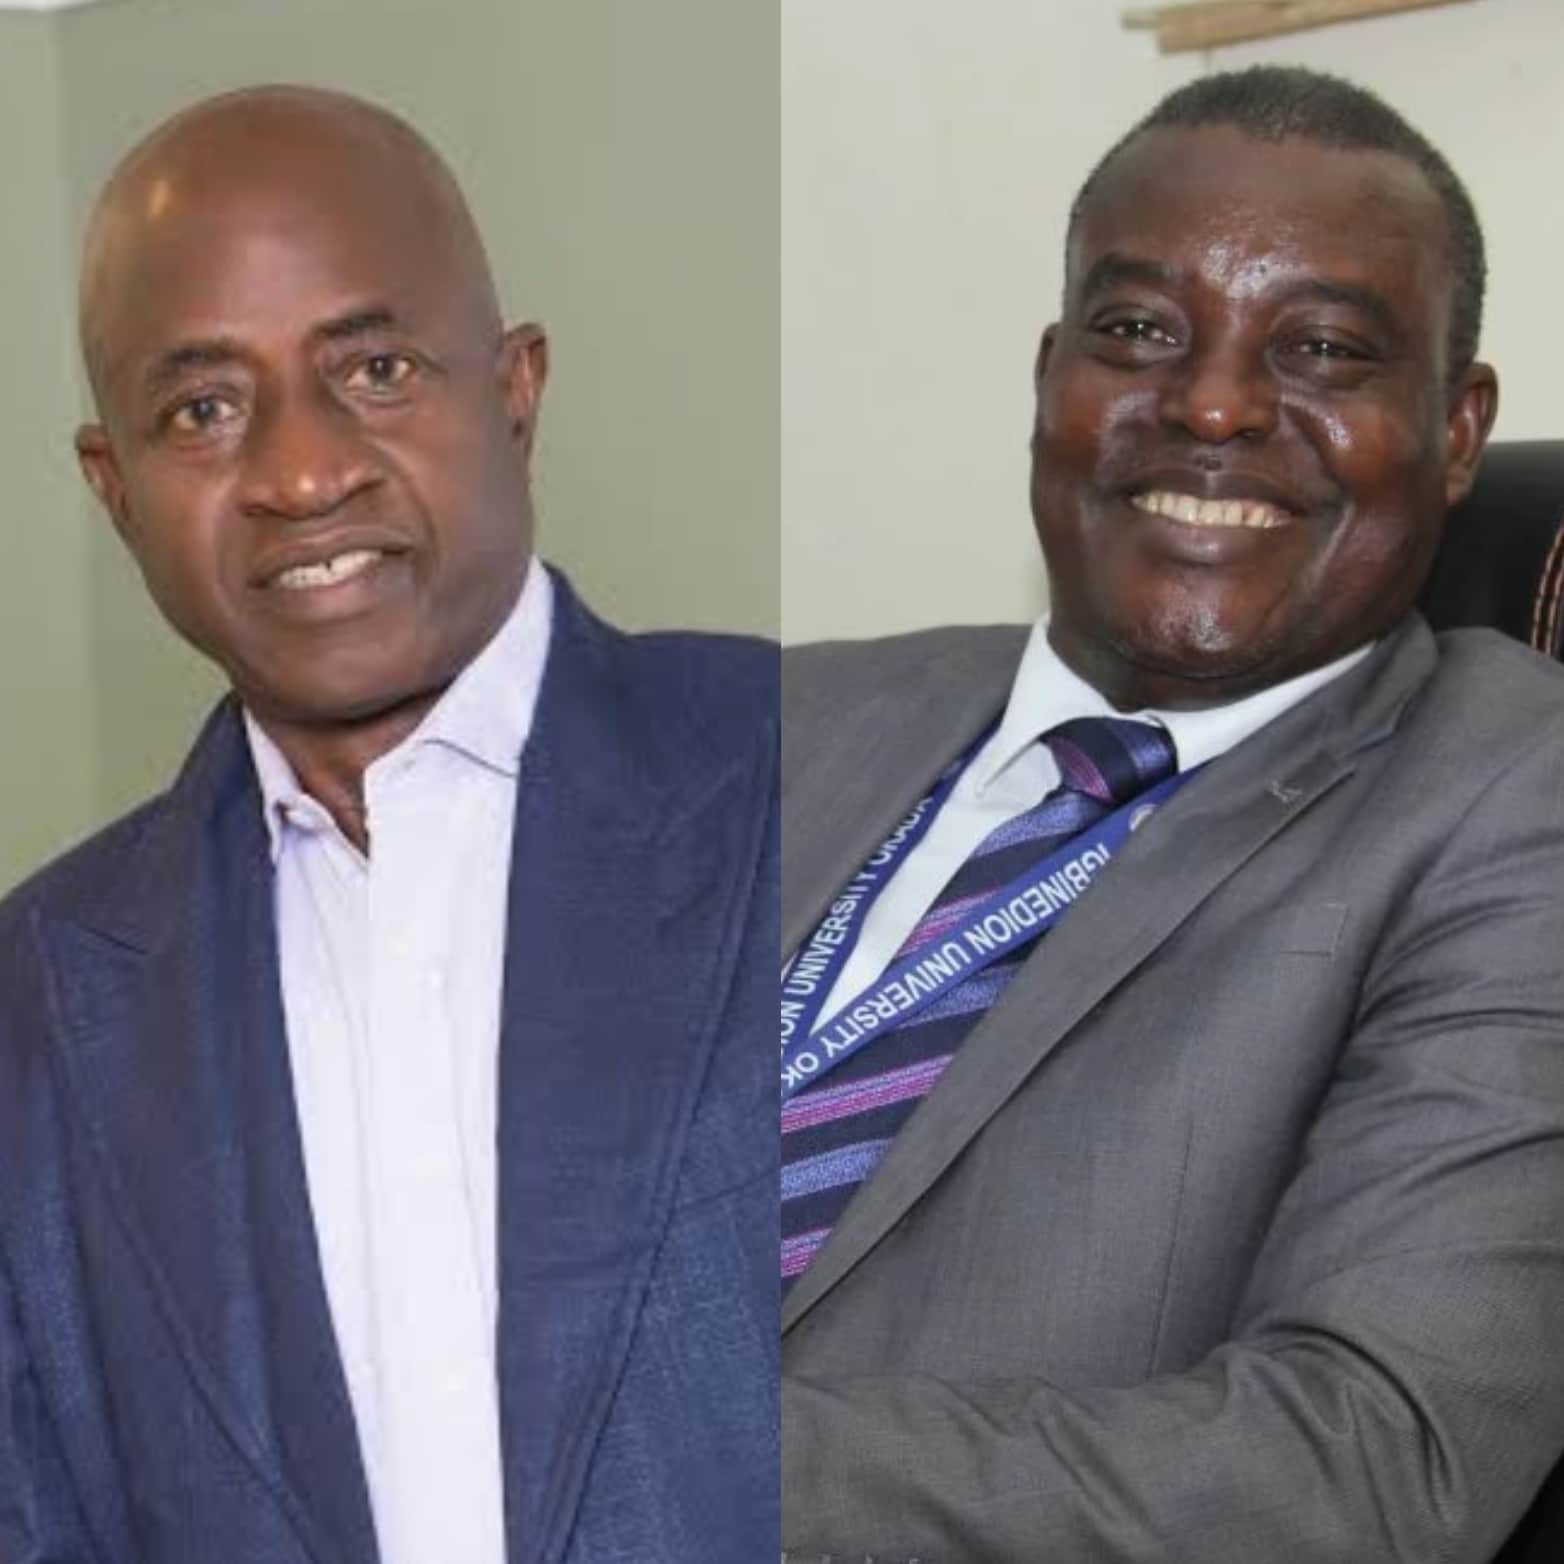 Odegbami: The Pawn And  The Prize – Mr. Sports Ambassador!